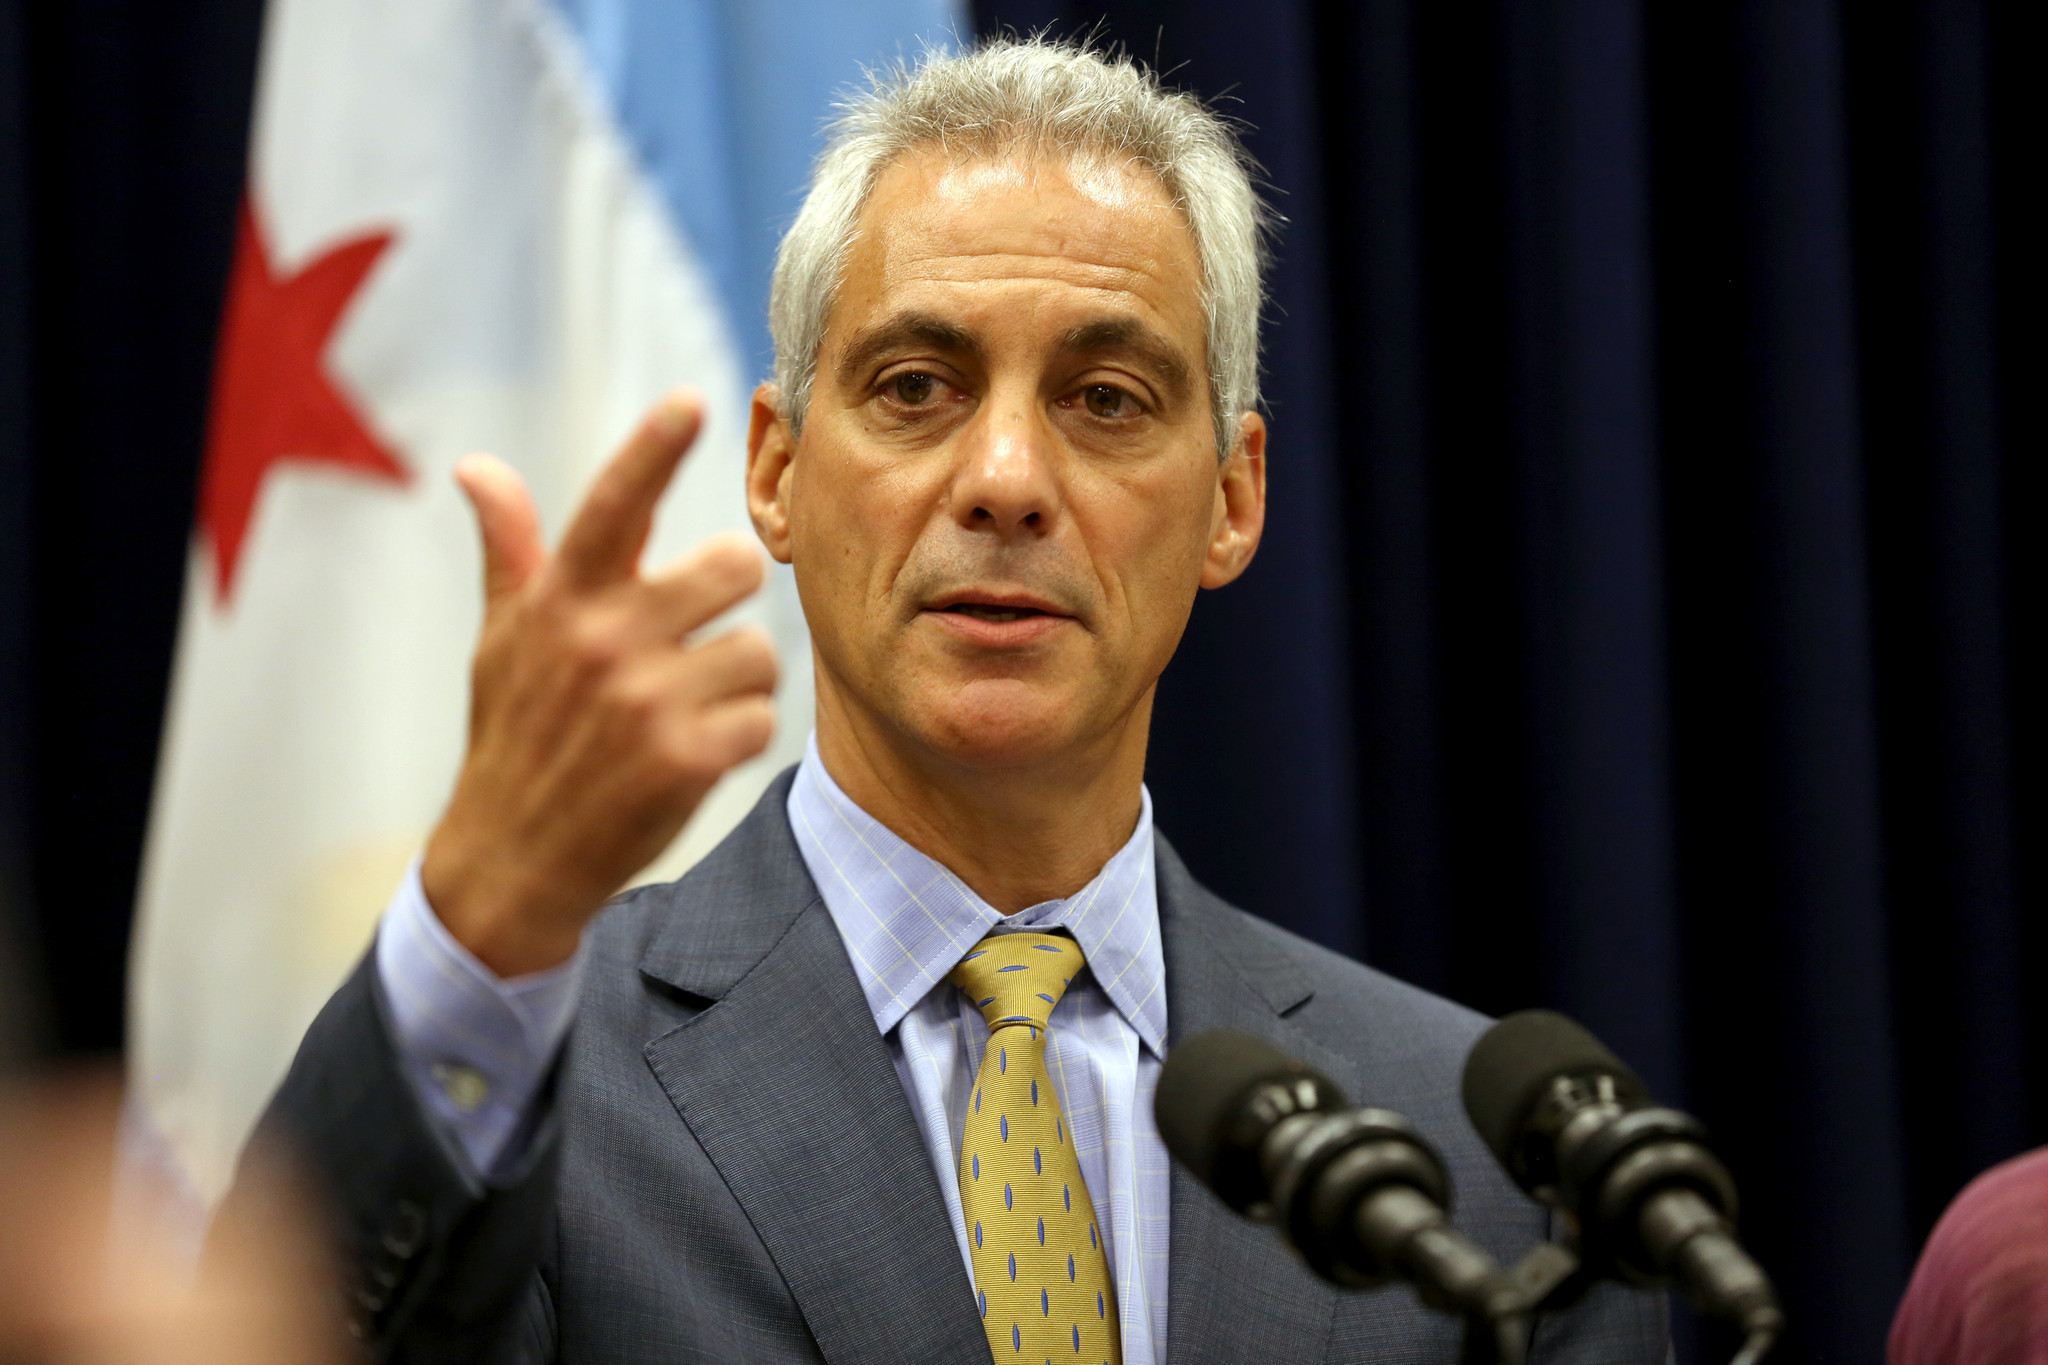 Rahm Emanuel defends record on ethics in first term